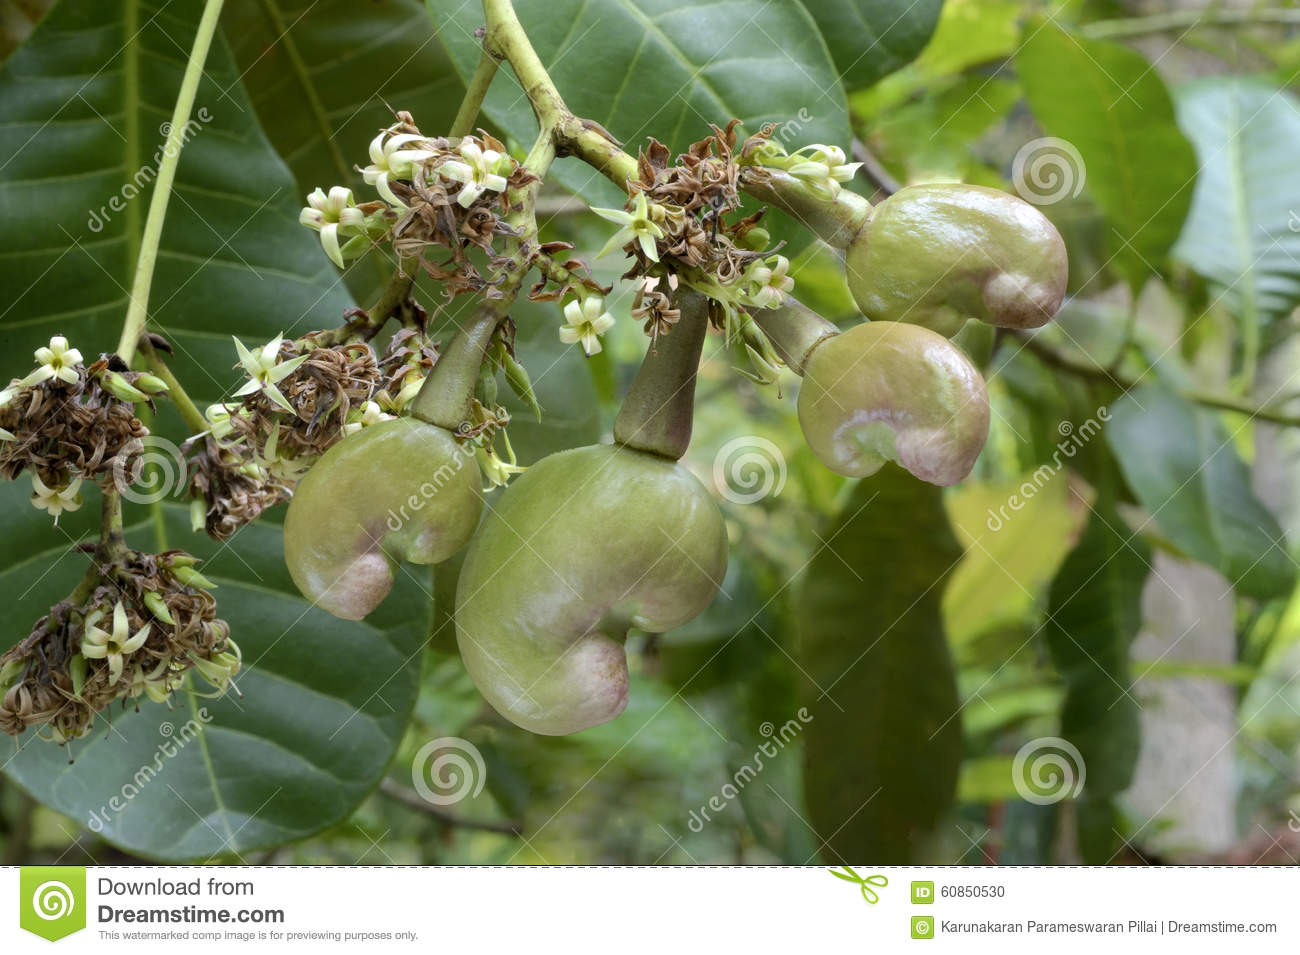 Cashew nut- Flowers and tender nuts on plant